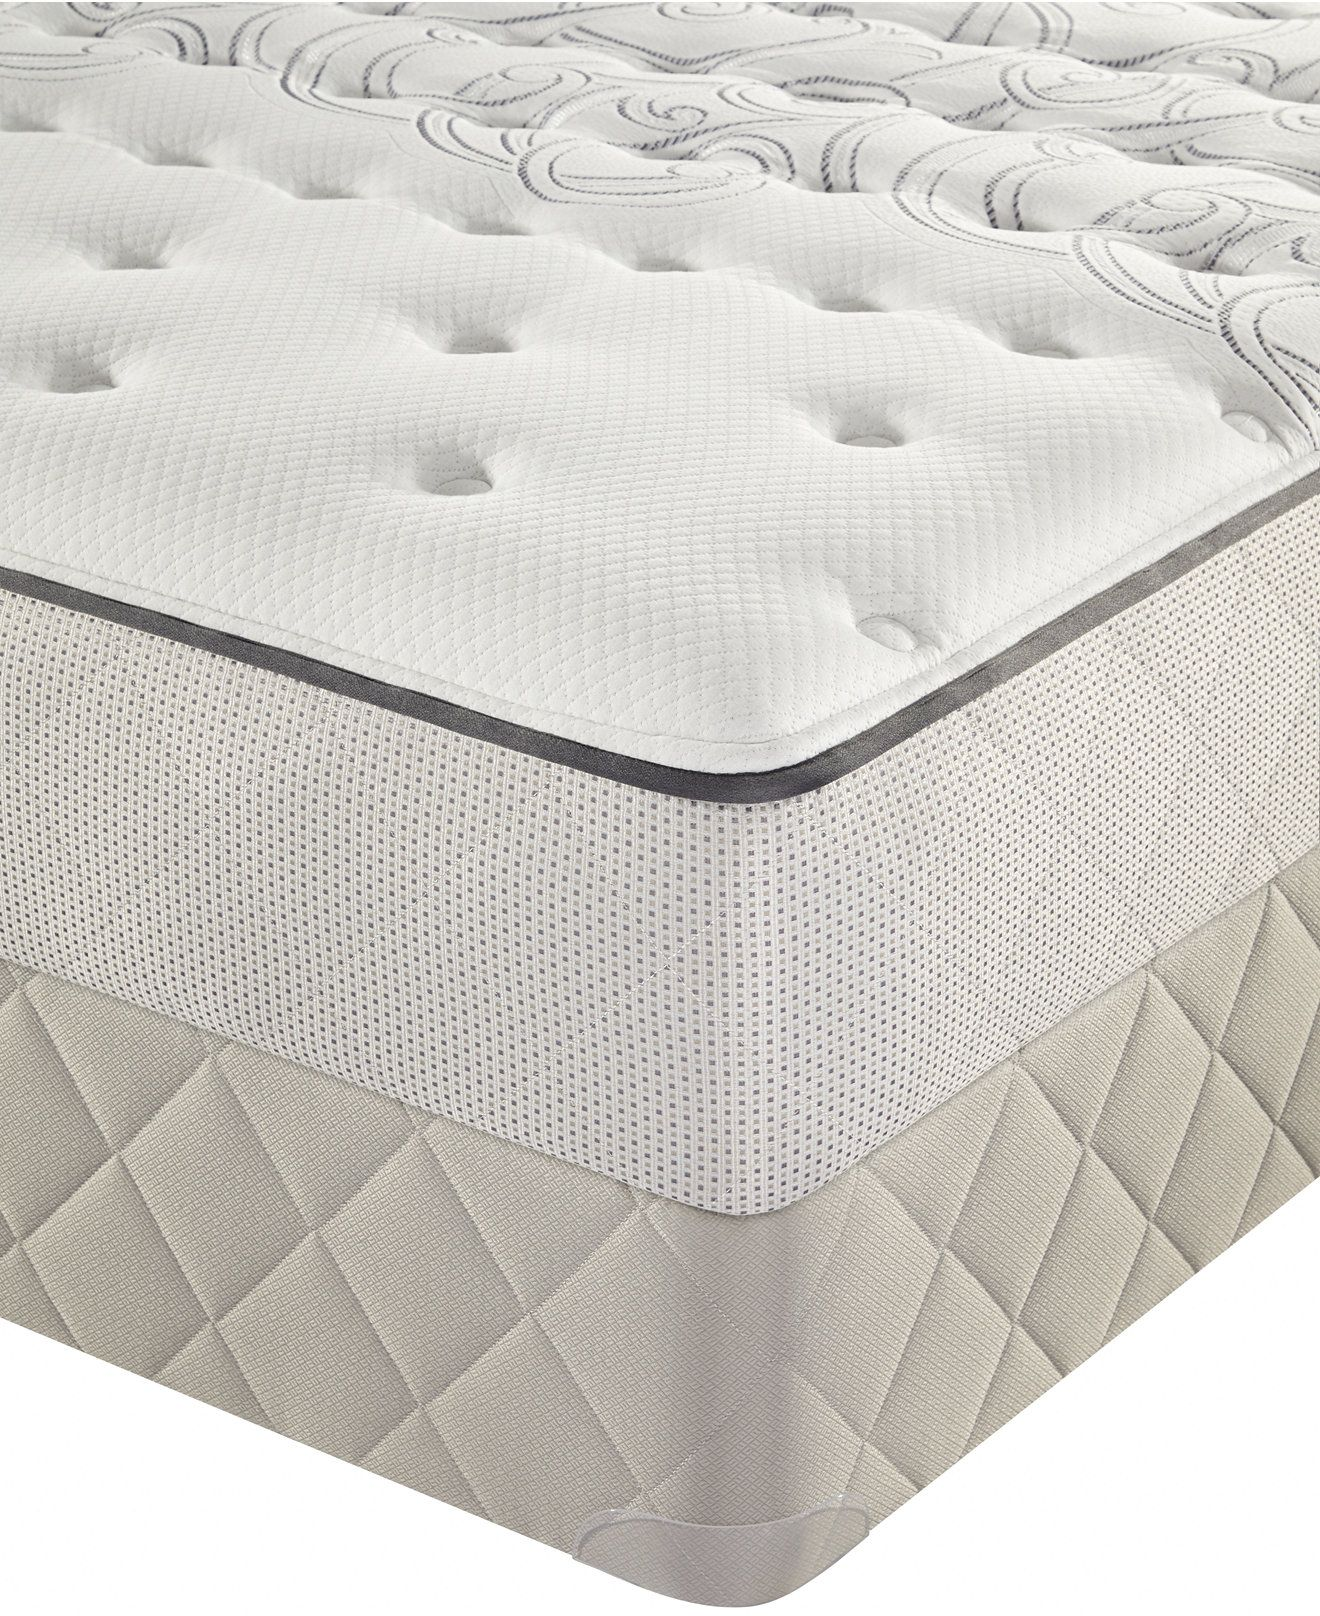 s bed macys sale mattress frame macy off park shop online battery queen beds